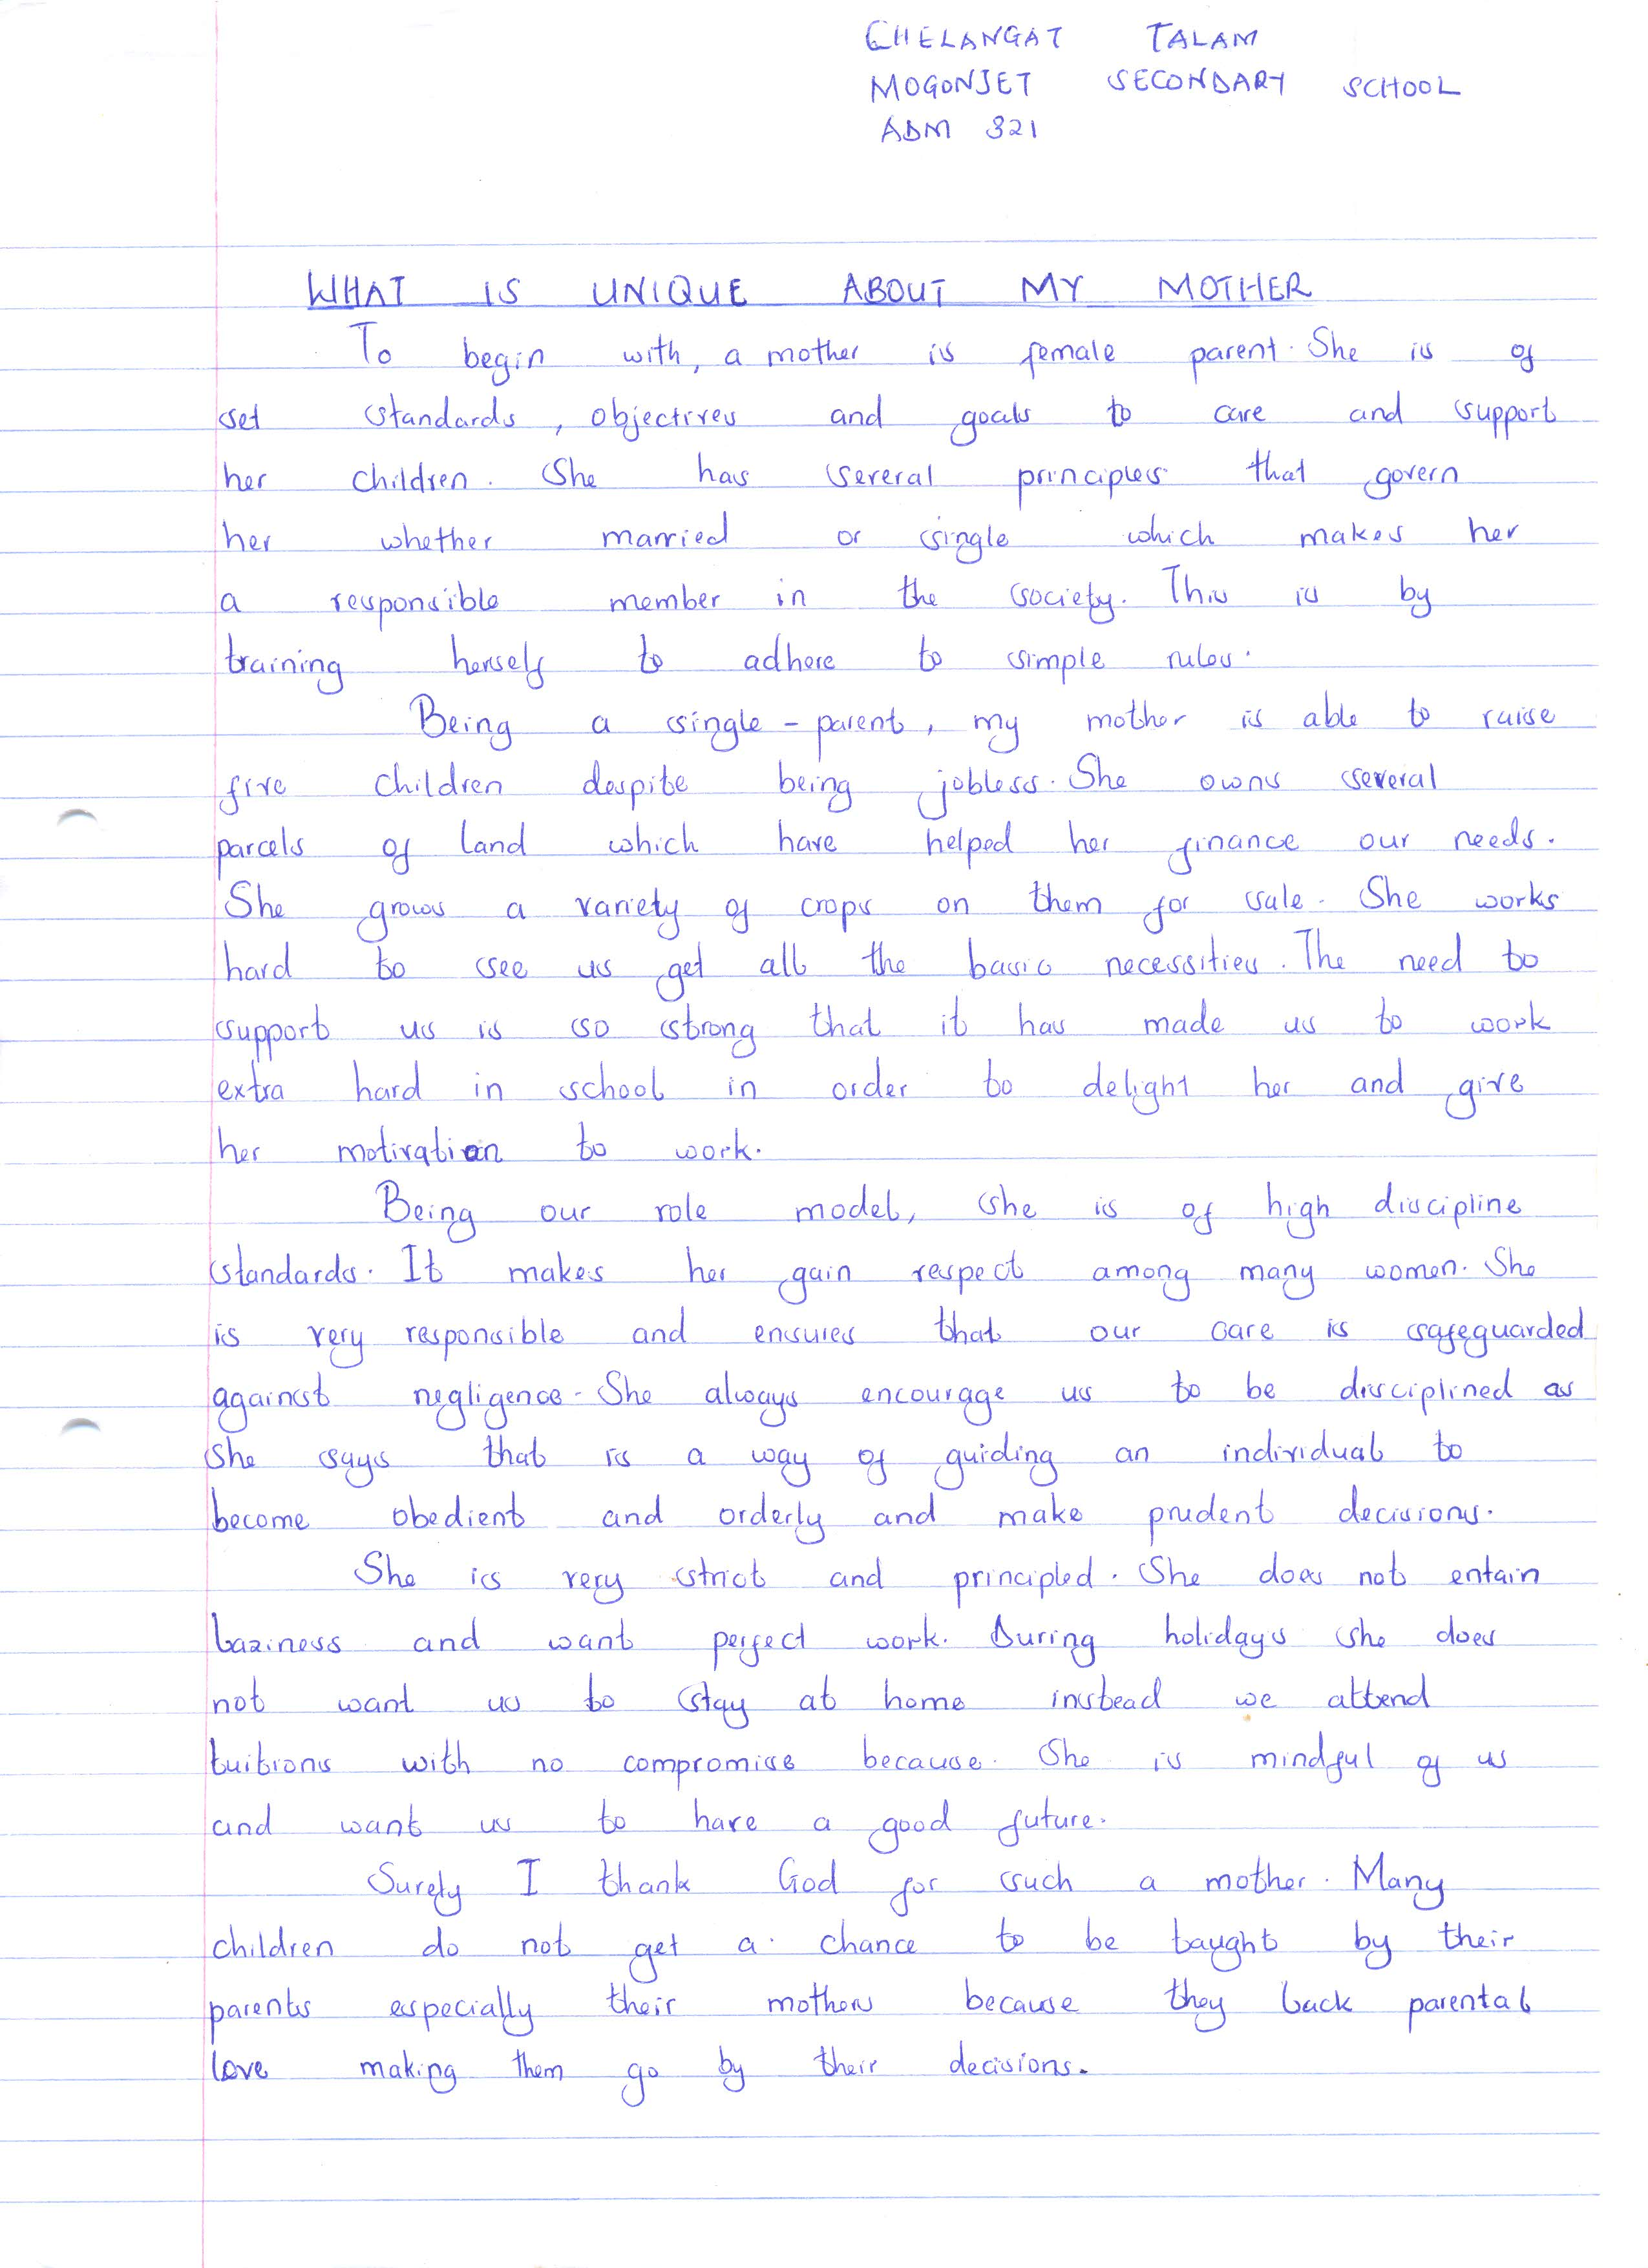 016 Essay Example Inspirational Breathtaking Essays About Life And Struggles For Youth Full